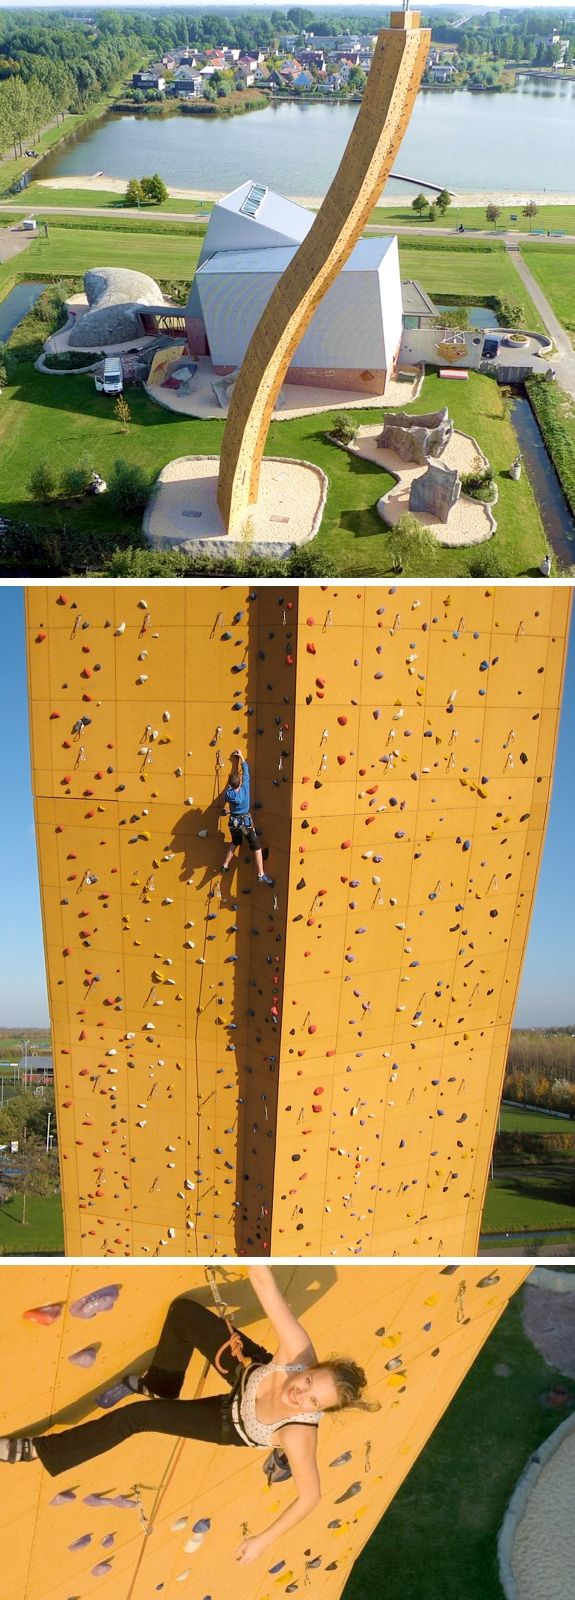 Cool Holland Travel Idea: World's Tallest Climbing Wall, Bjoeks Klimcentrum